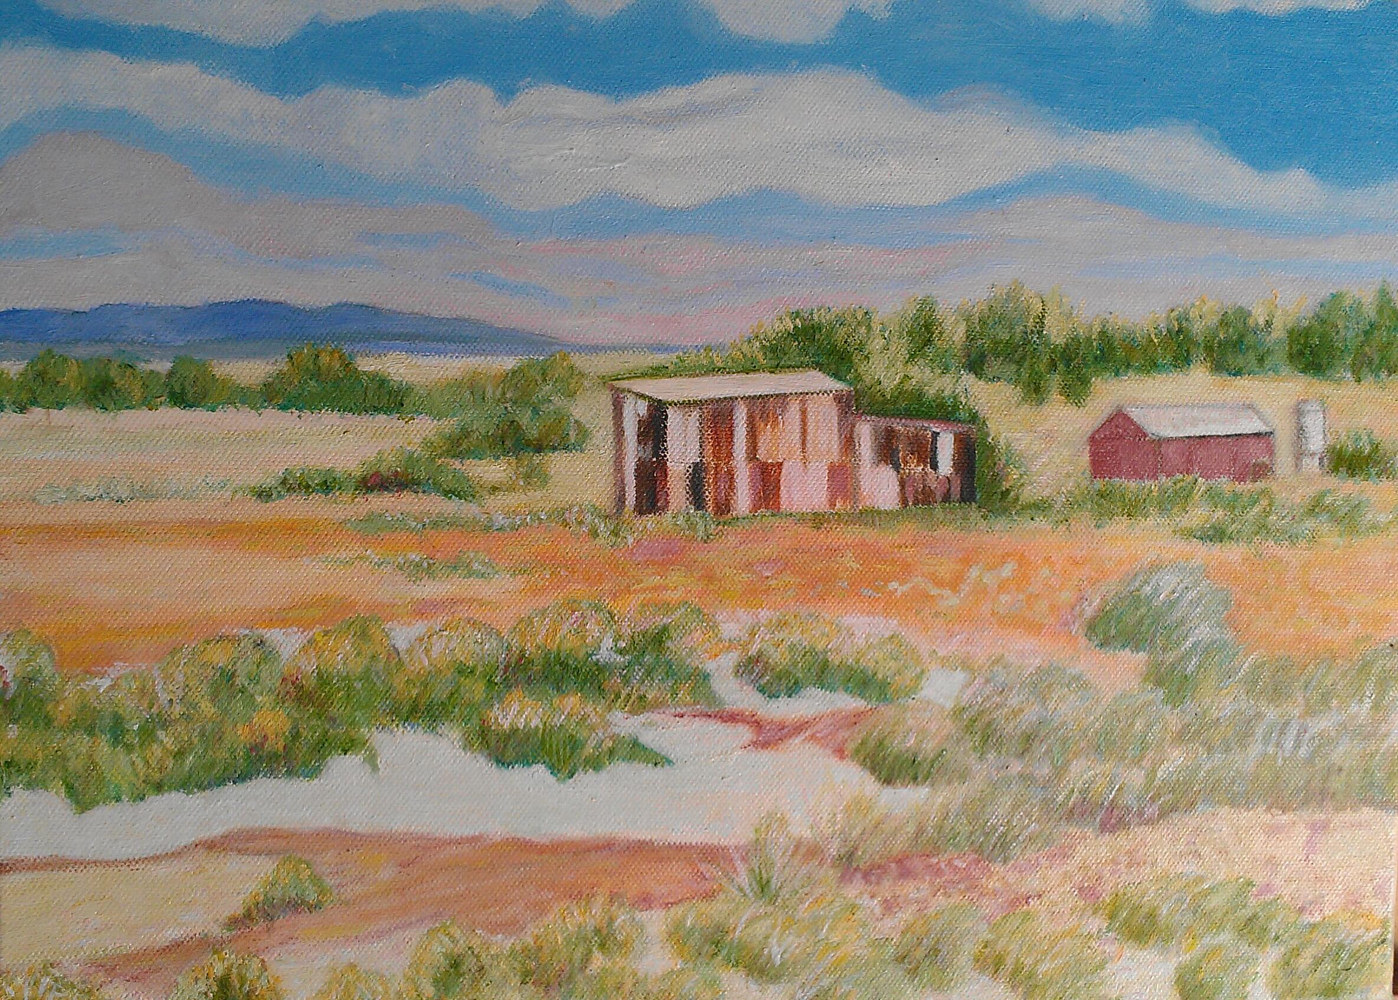 Oil painting The Old Shed, Somewhere near Port Pierie by Gwenda Branjerdporn